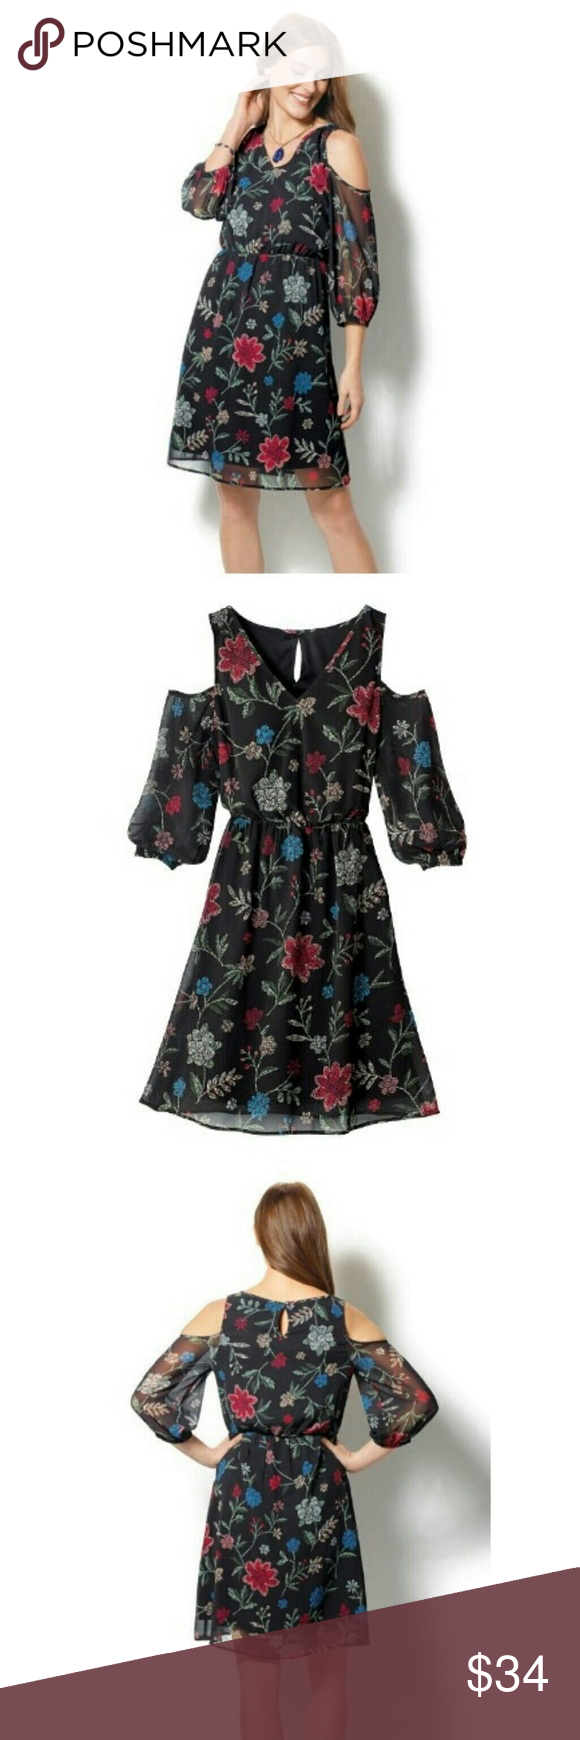 e81ae5f66a39 Cold Shoulder Boho Floral Dress This feminine frock is the perfect  transitional piece. Perfect for any occasion. It has an elastic cinch  waist